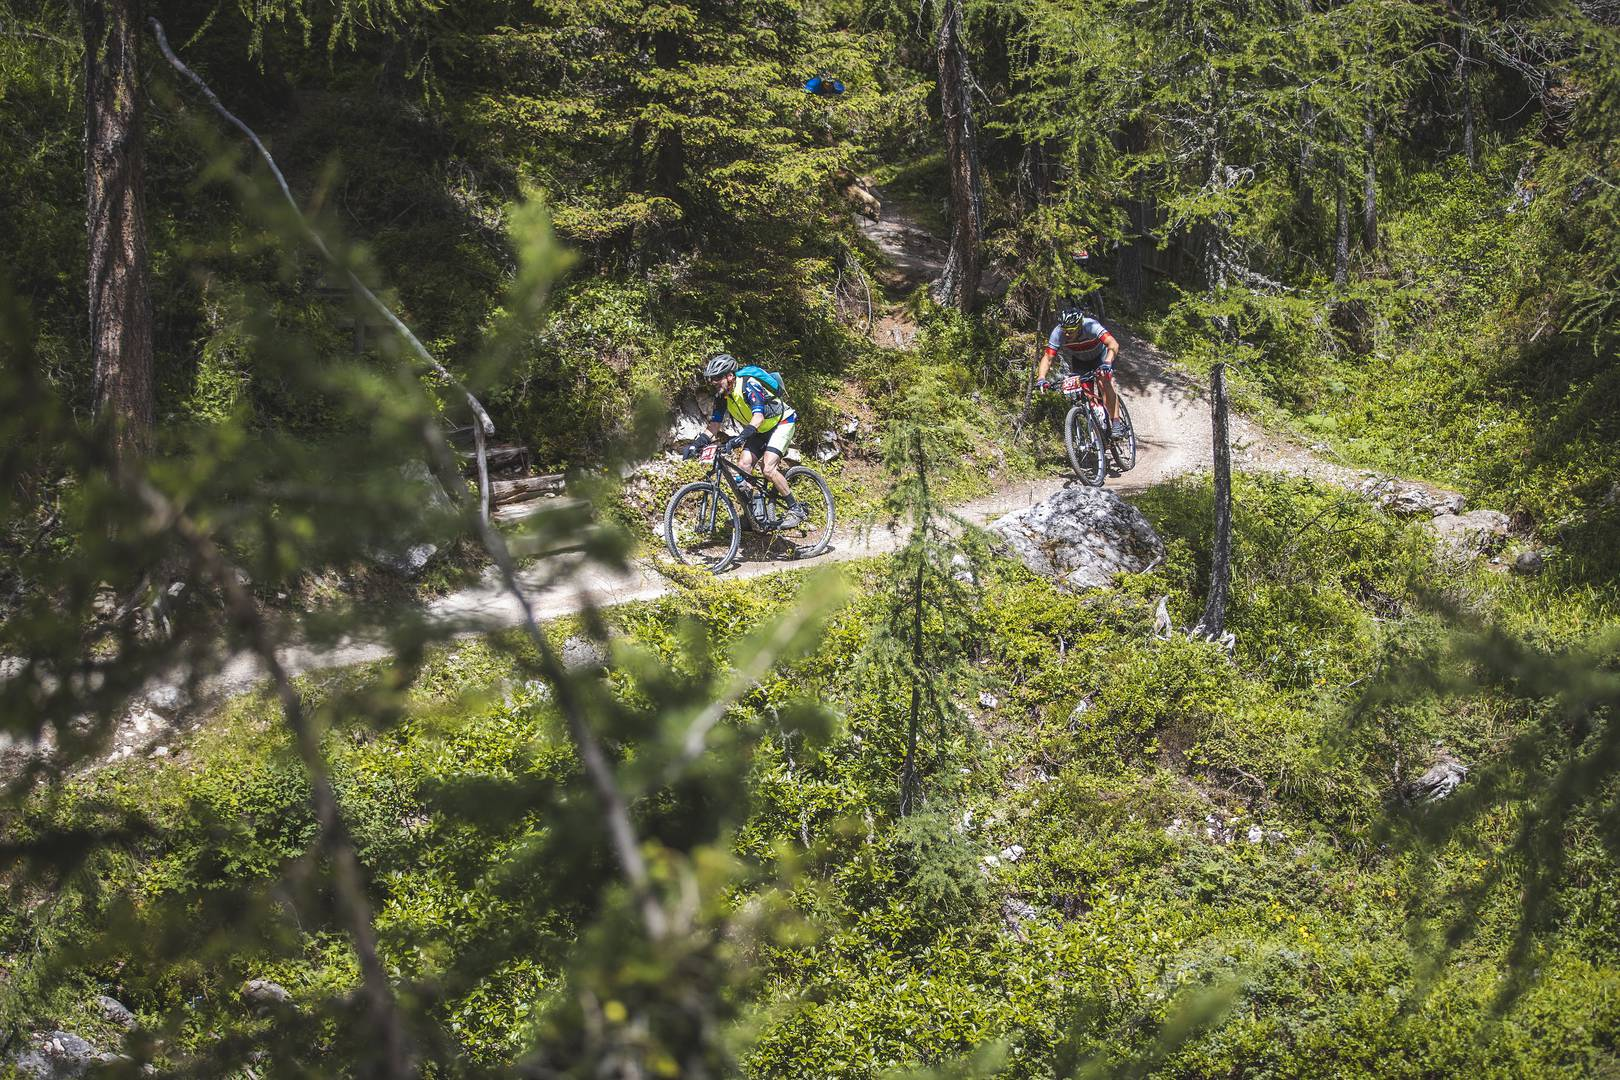 Calendario Gare Mtb 2020.La Gara Di Mountain Bike Dolomiti Superbike